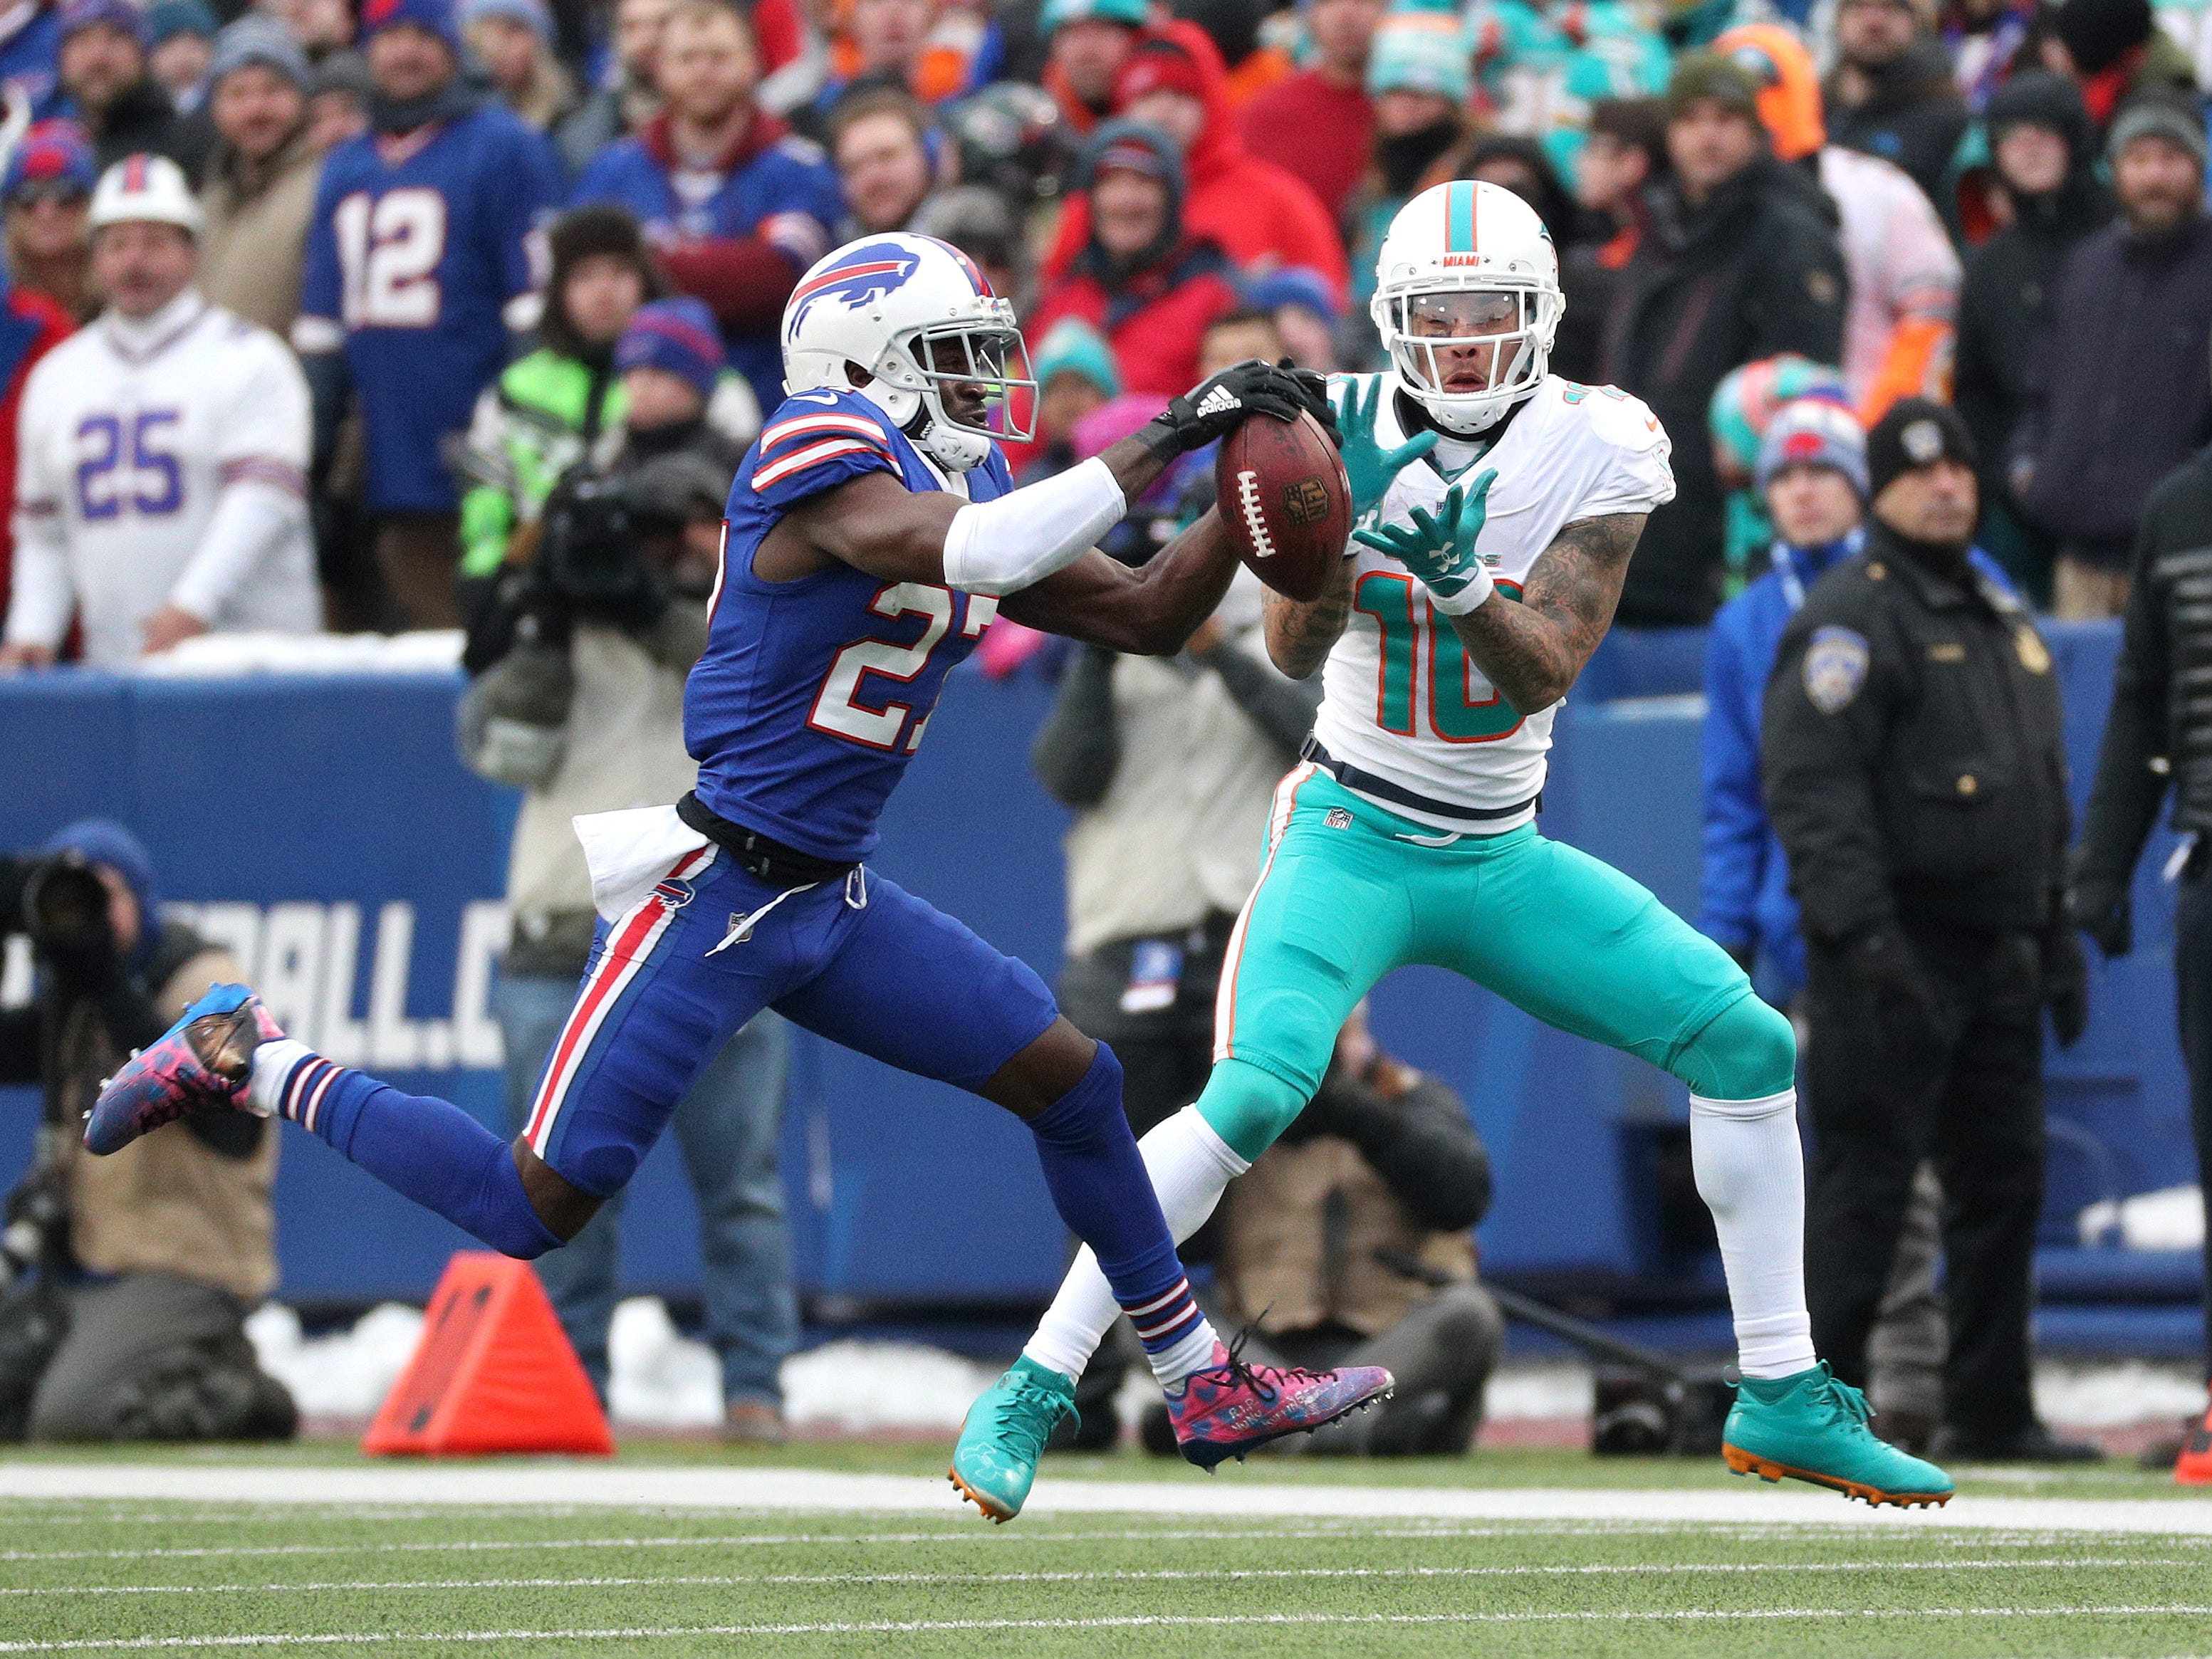 Bills cornerback Tre'Davious White intercepts a pass intended for Dolphins receiver Kenny Stills during Sunday's season finale at New Era Field.